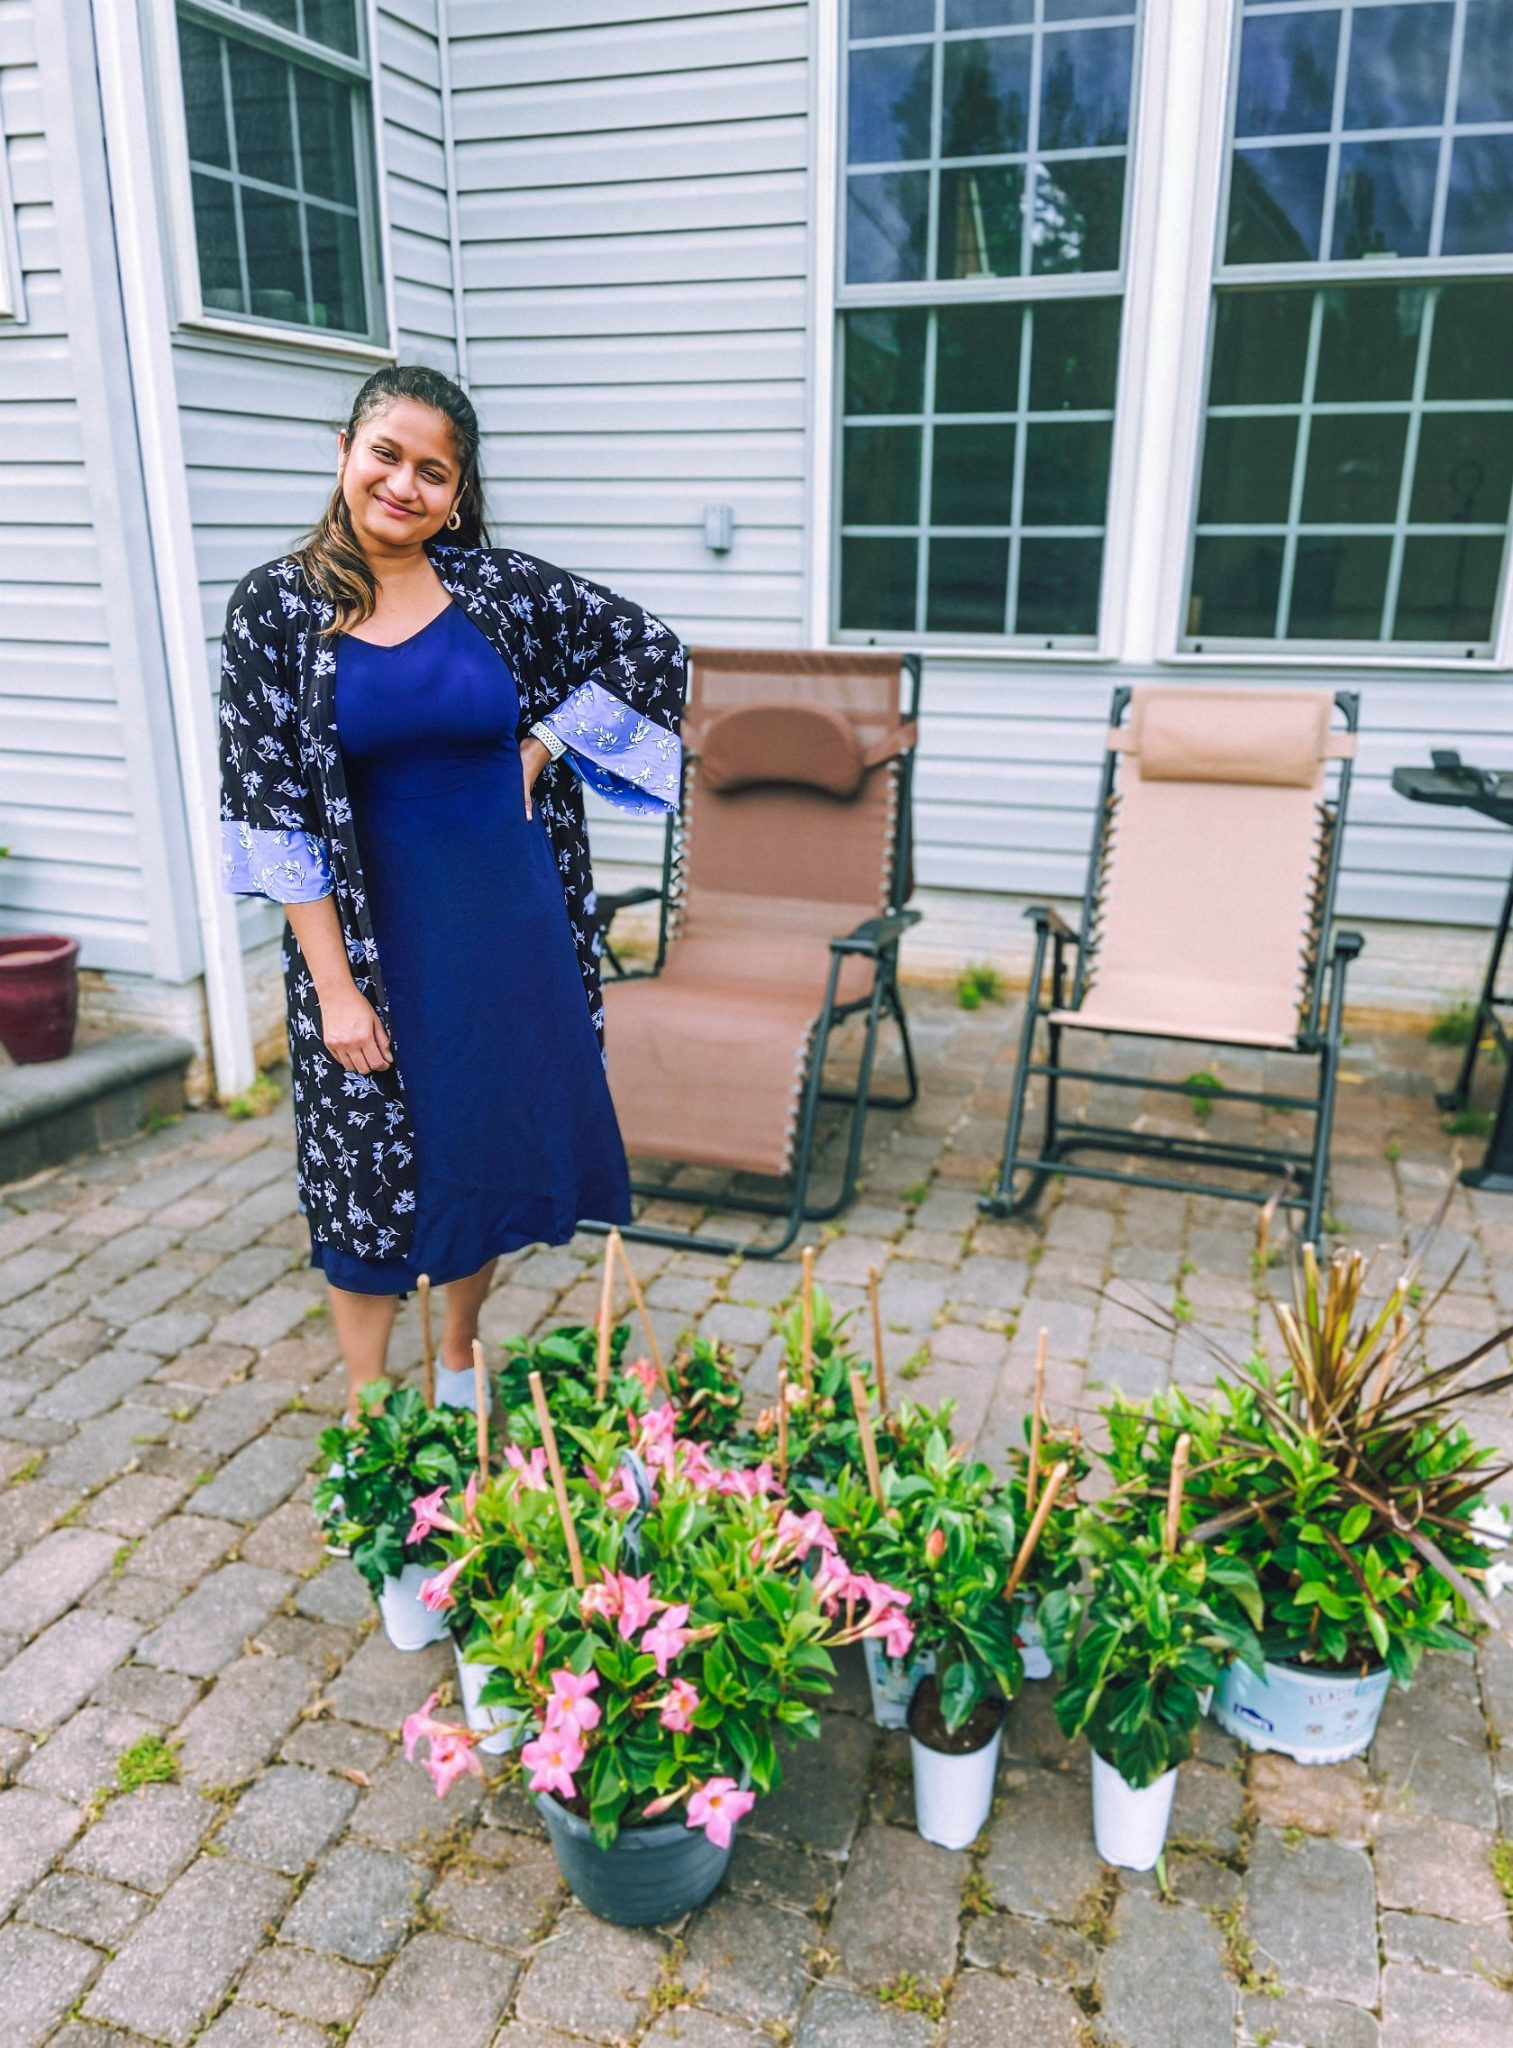 wearing Uniqlo Cami dress_ Soma COOL NIGHTS Wrap_ Marc Fisher wedges | Flower Bed Design by popular Michigan life and style blog, Dreaming Loud: image of a woman wearing a blue floral duster and blue dress and standing next to some potted plants on her back patio.